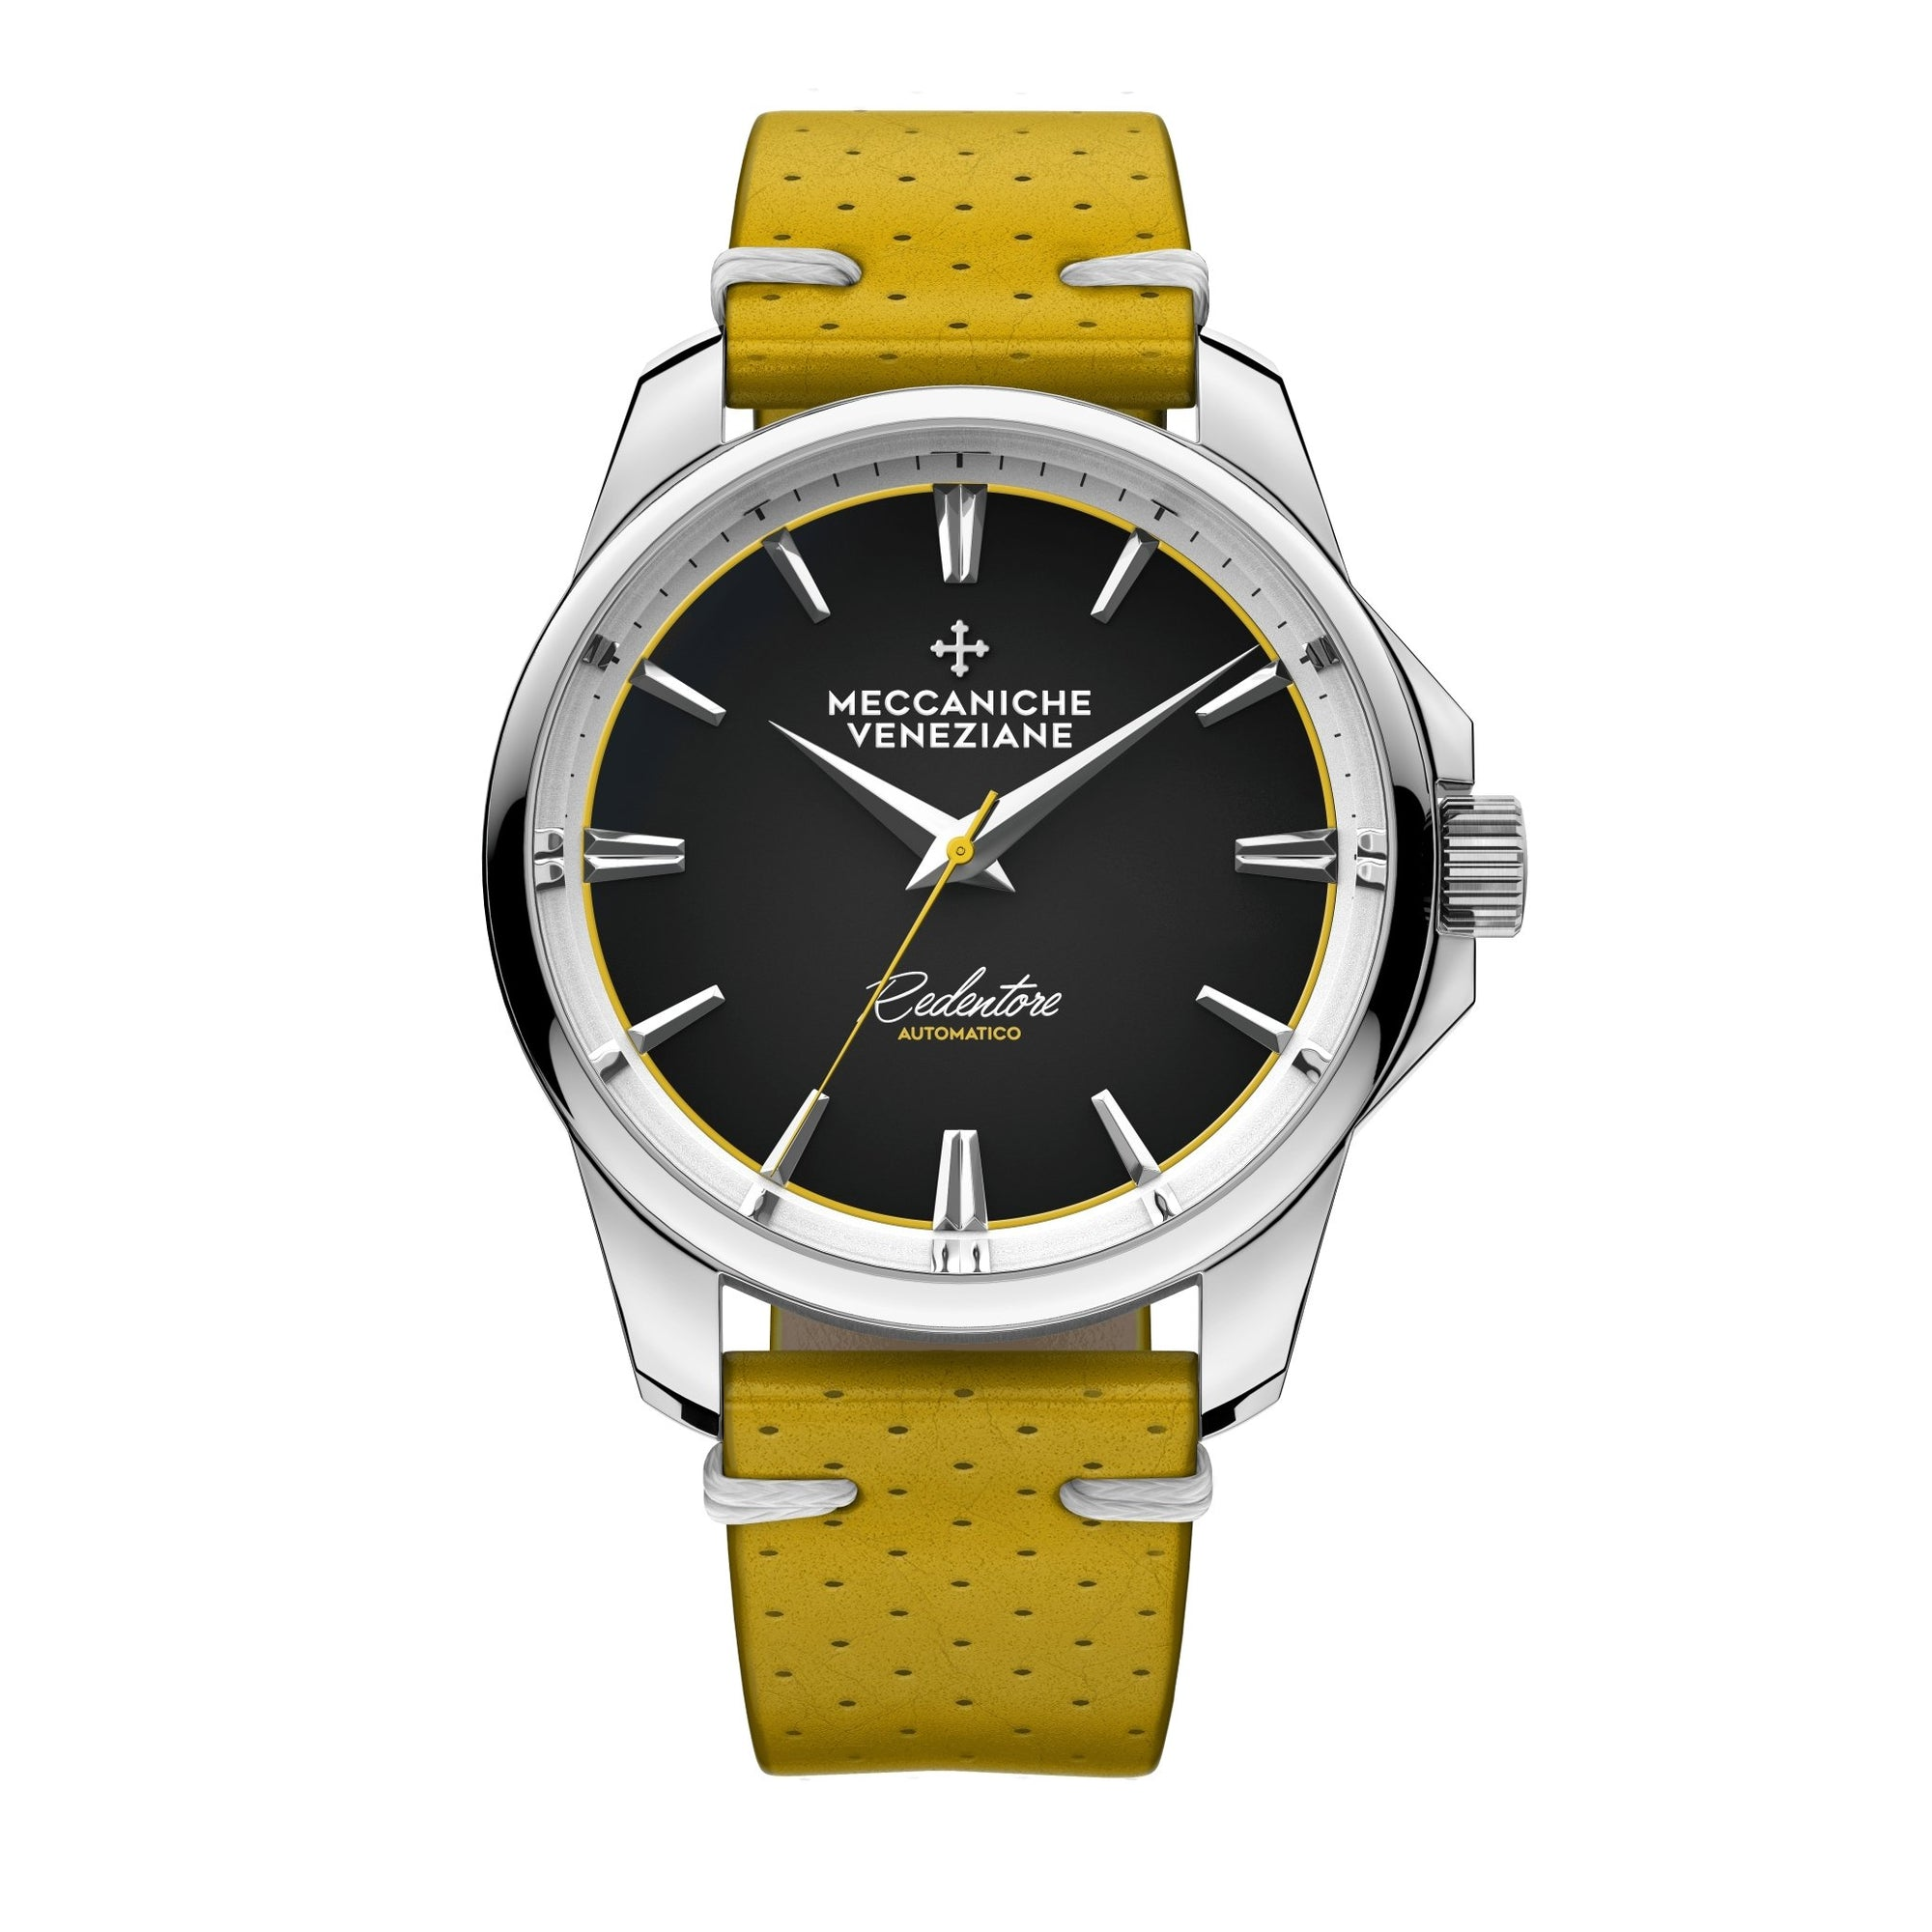 Meccaniche Veneziane Redentore Racing Yellow - Watches & Crystals